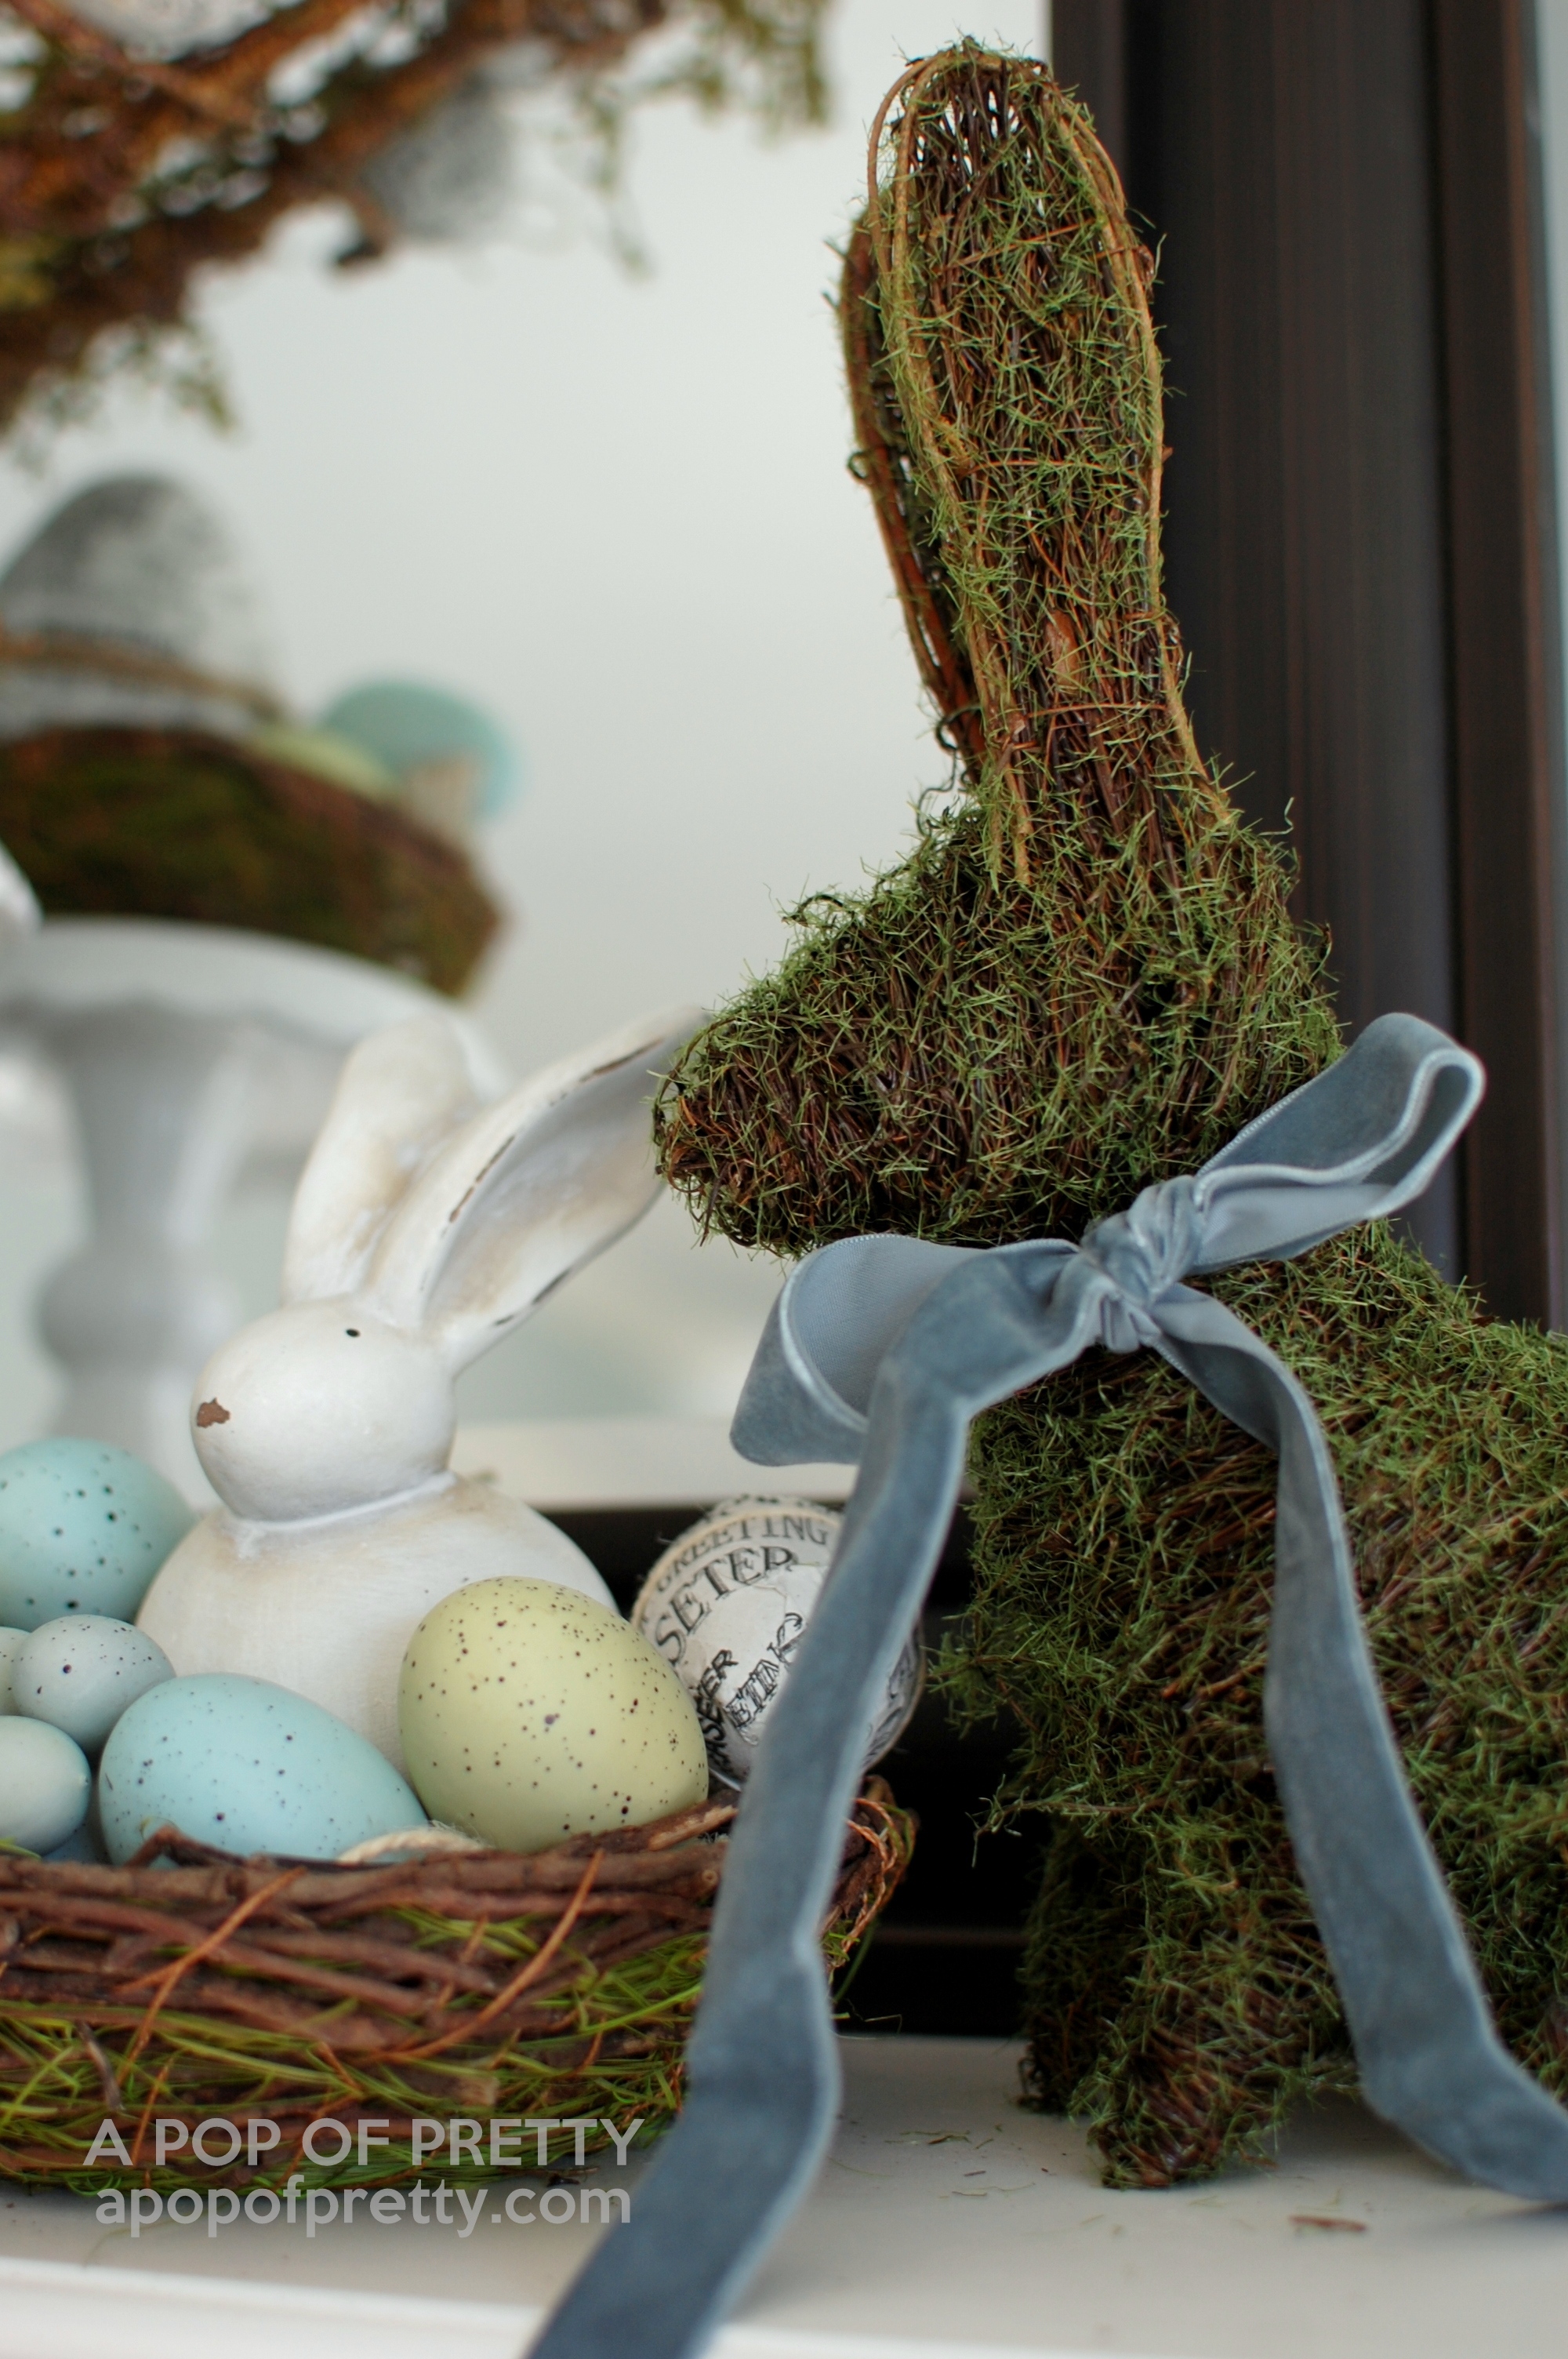 Mossy Easter bunny decor